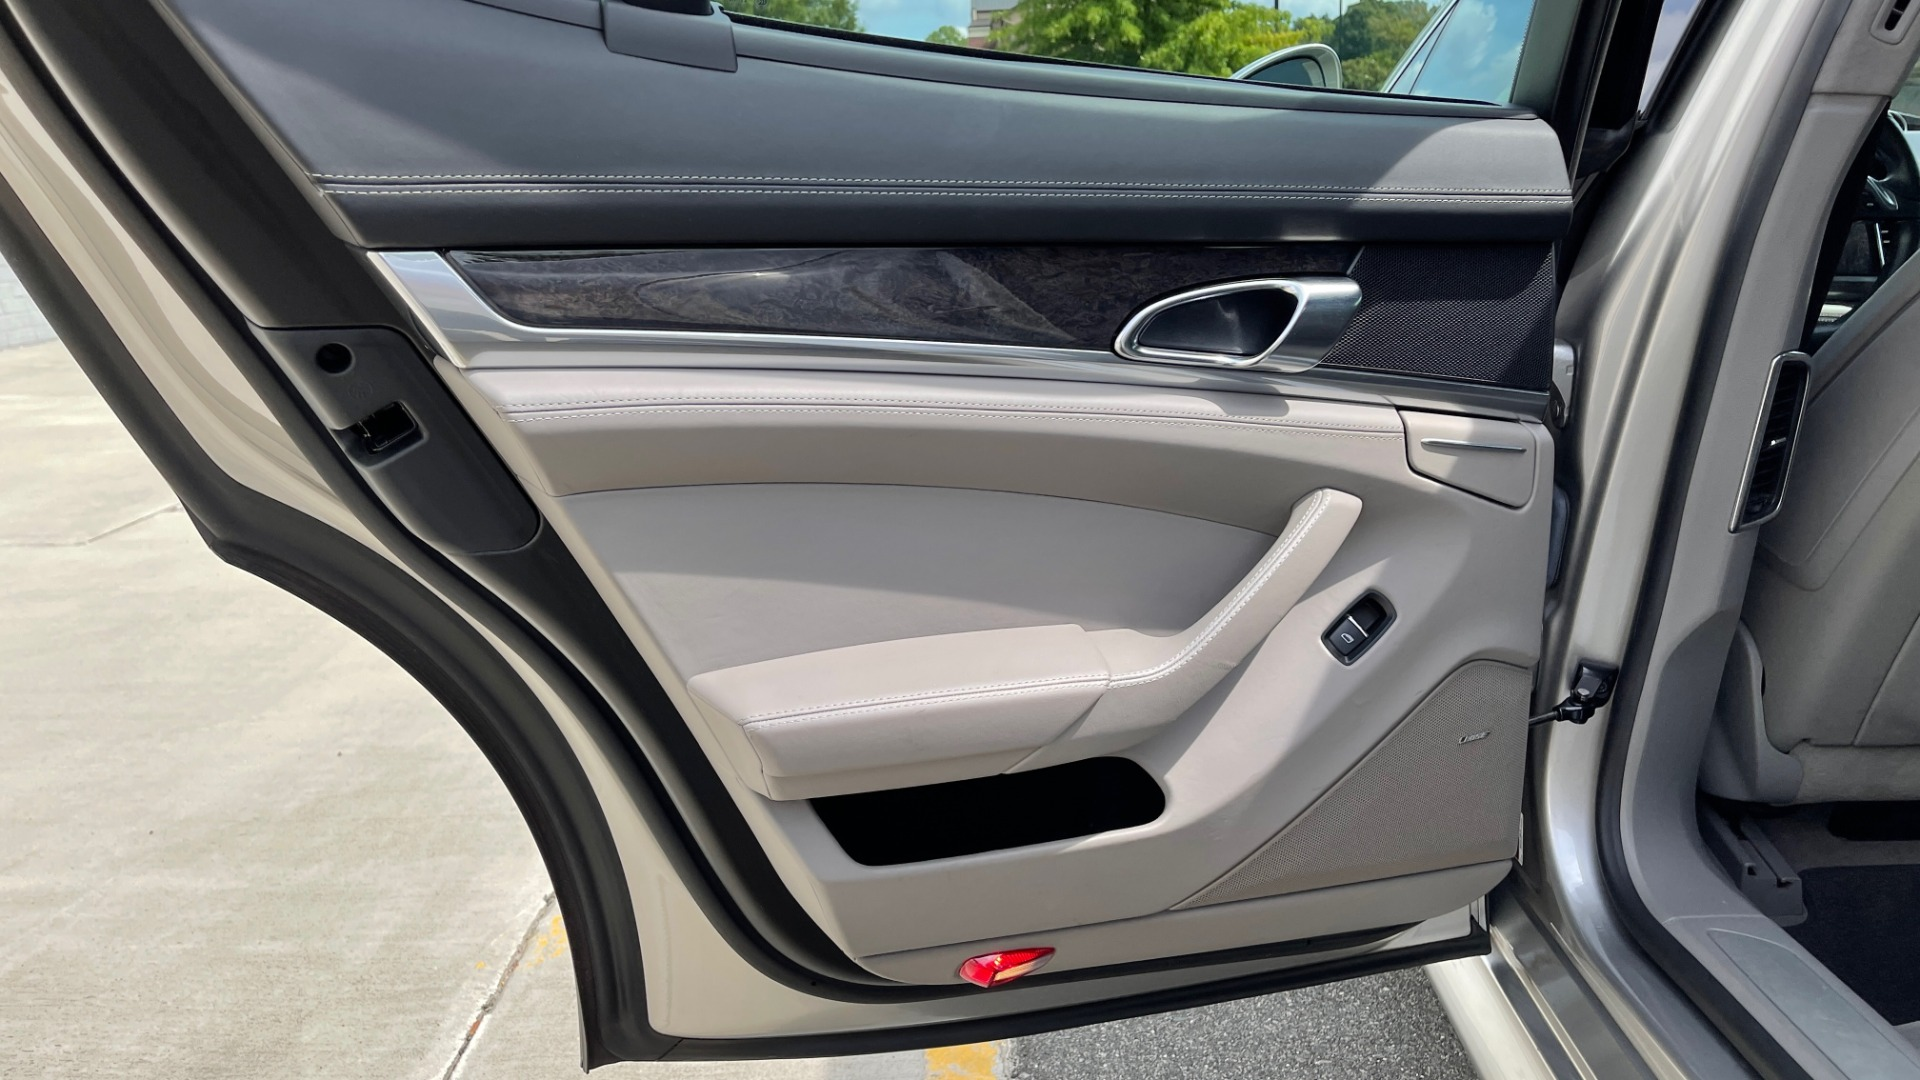 Used 2010 Porsche PANAMERA 4DR HB TURBO / SPORT CHRONO / BOSE / AUTO CLIMATE CONTROL for sale $42,124 at Formula Imports in Charlotte NC 28227 48